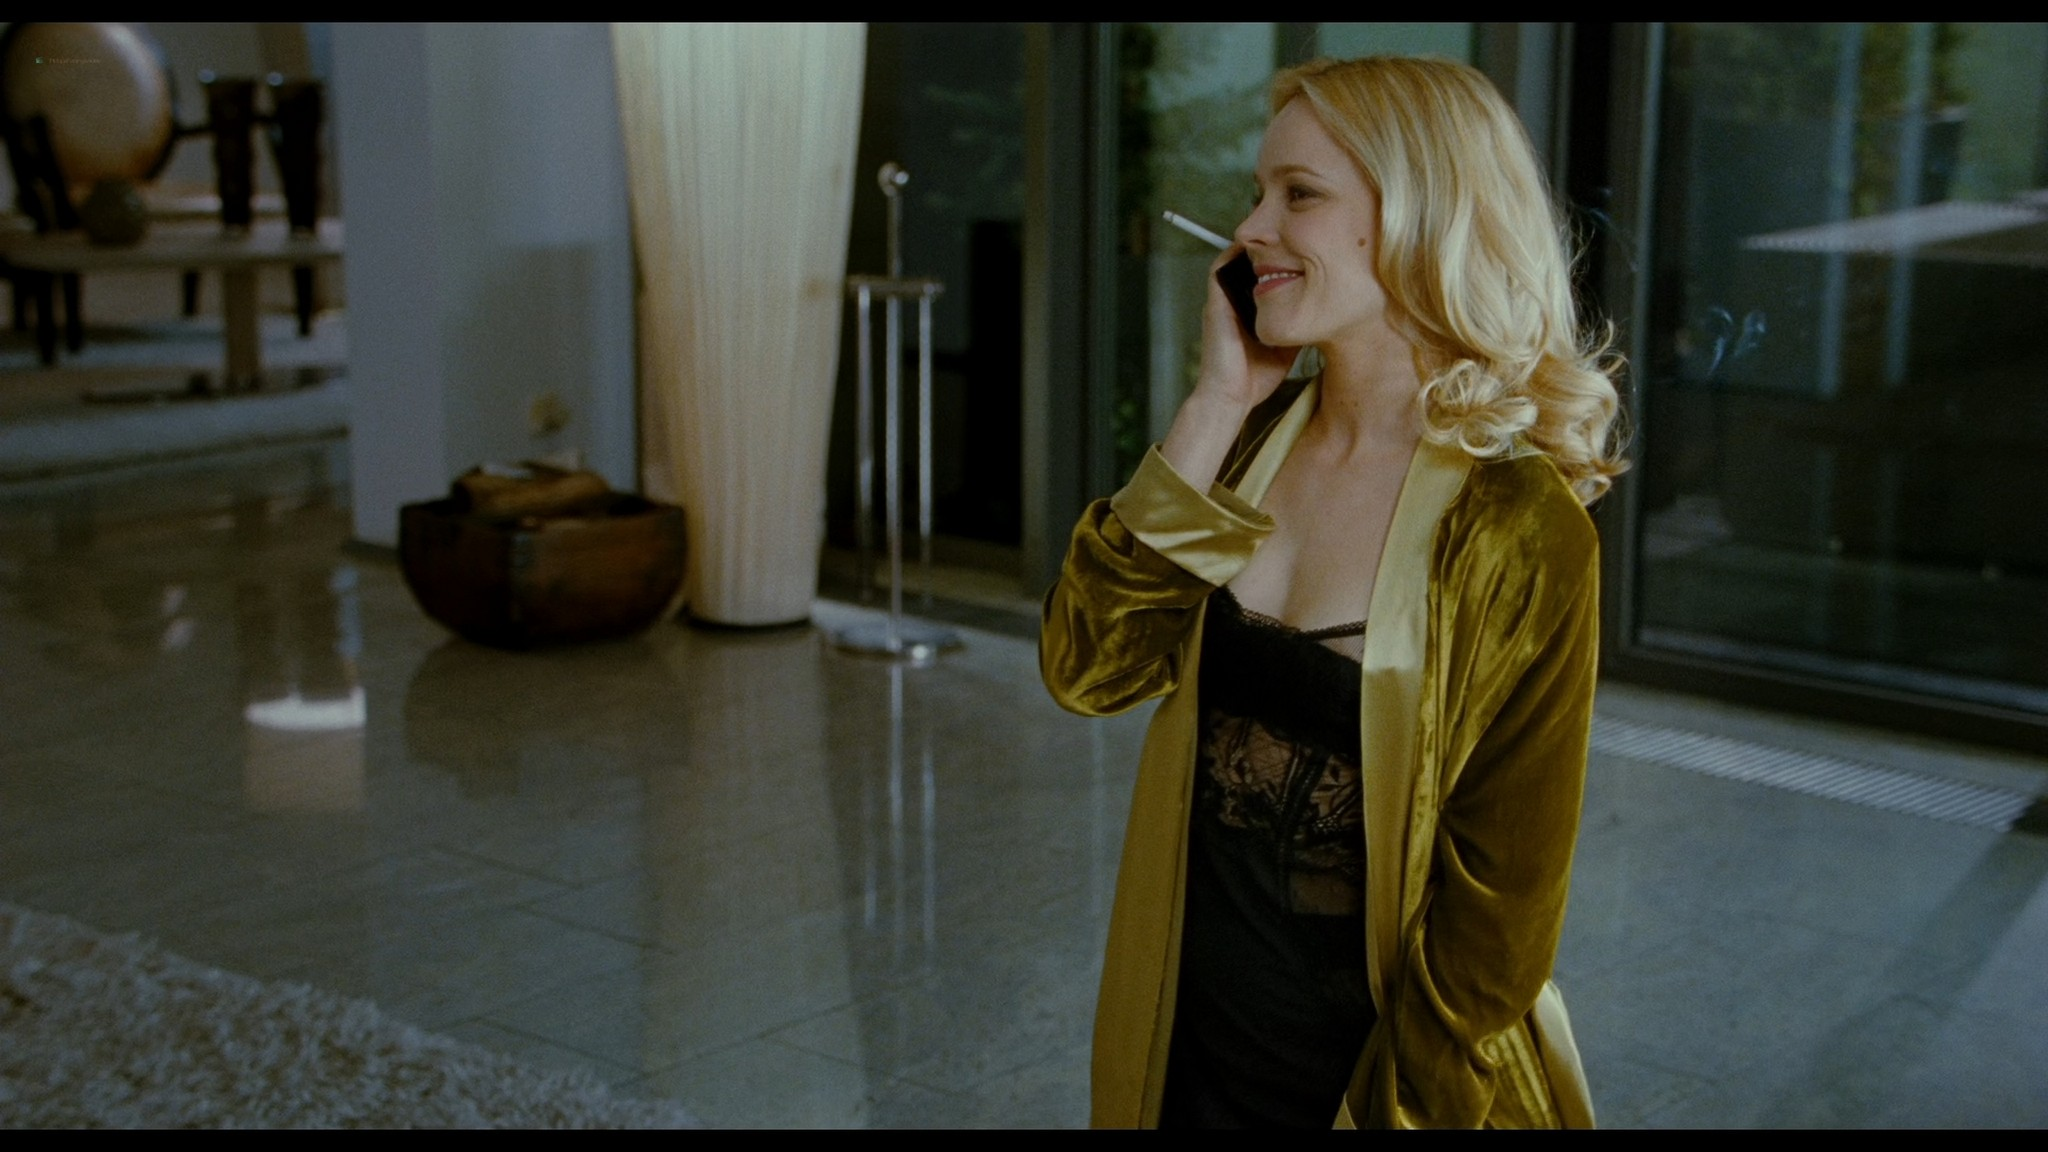 Rachel McAdams hot and sexy in lingerie Passion 2012 HD 1080p BluRay REMUX 9